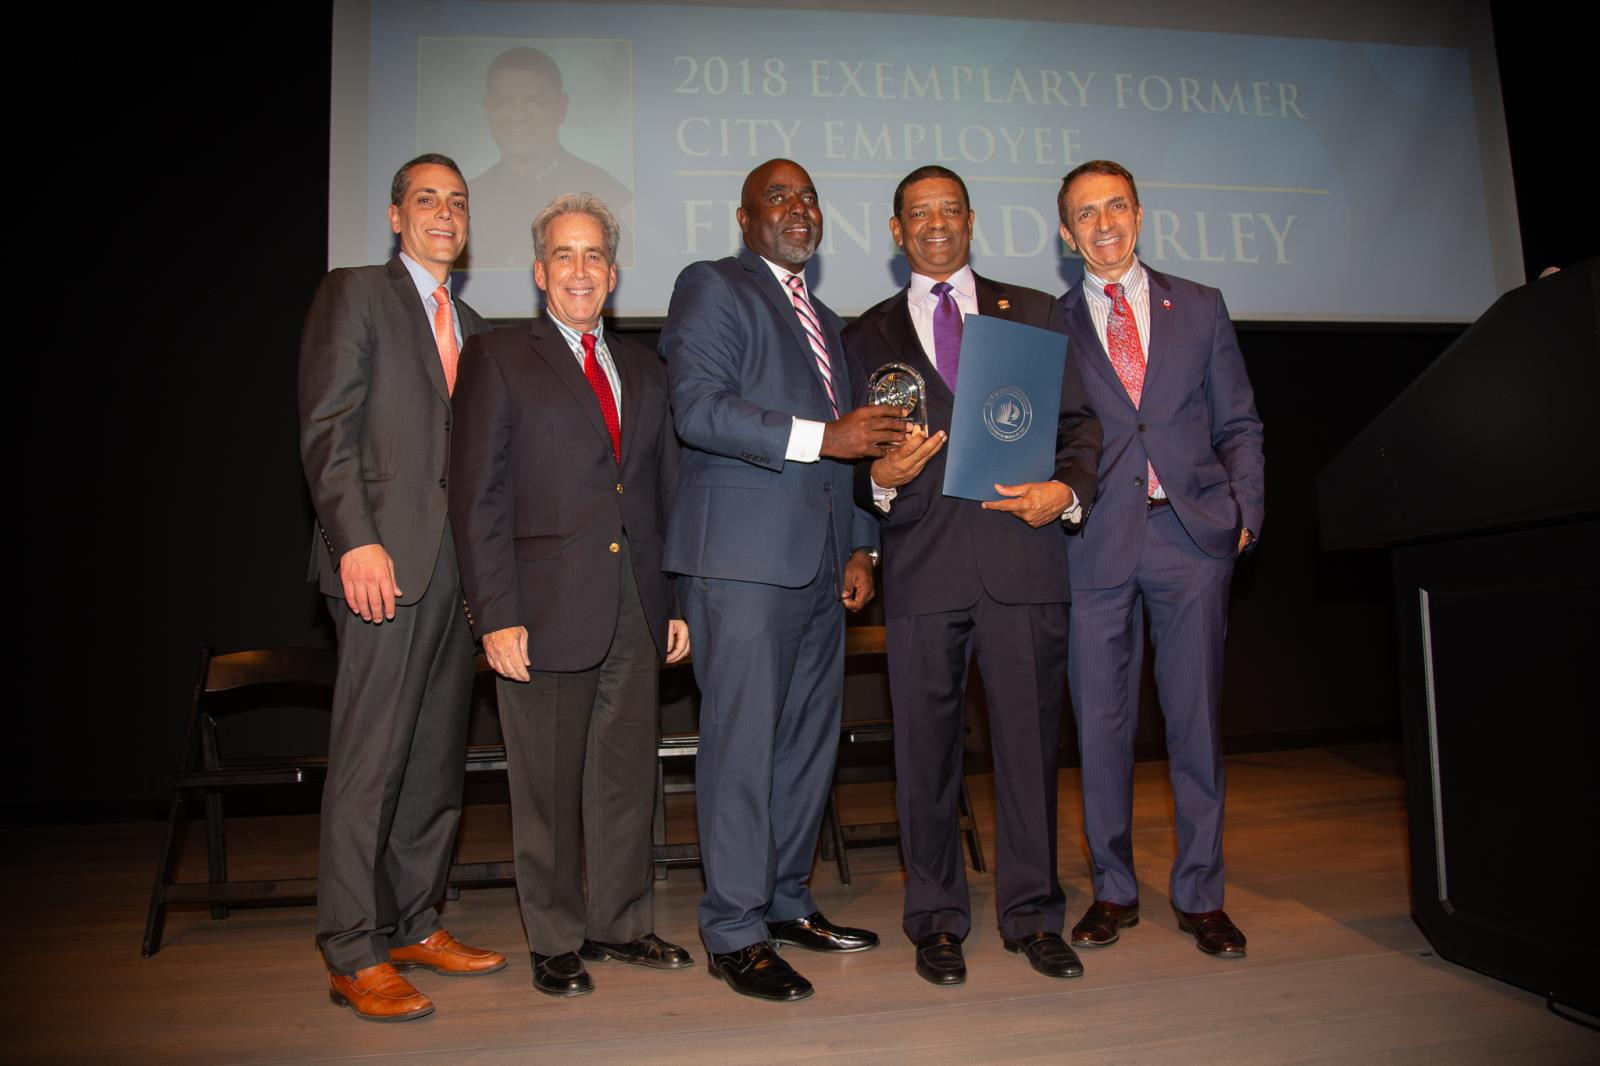 Fort Lauderdale City Commission with the 2018 Exemplary City Employee Frank Adderley